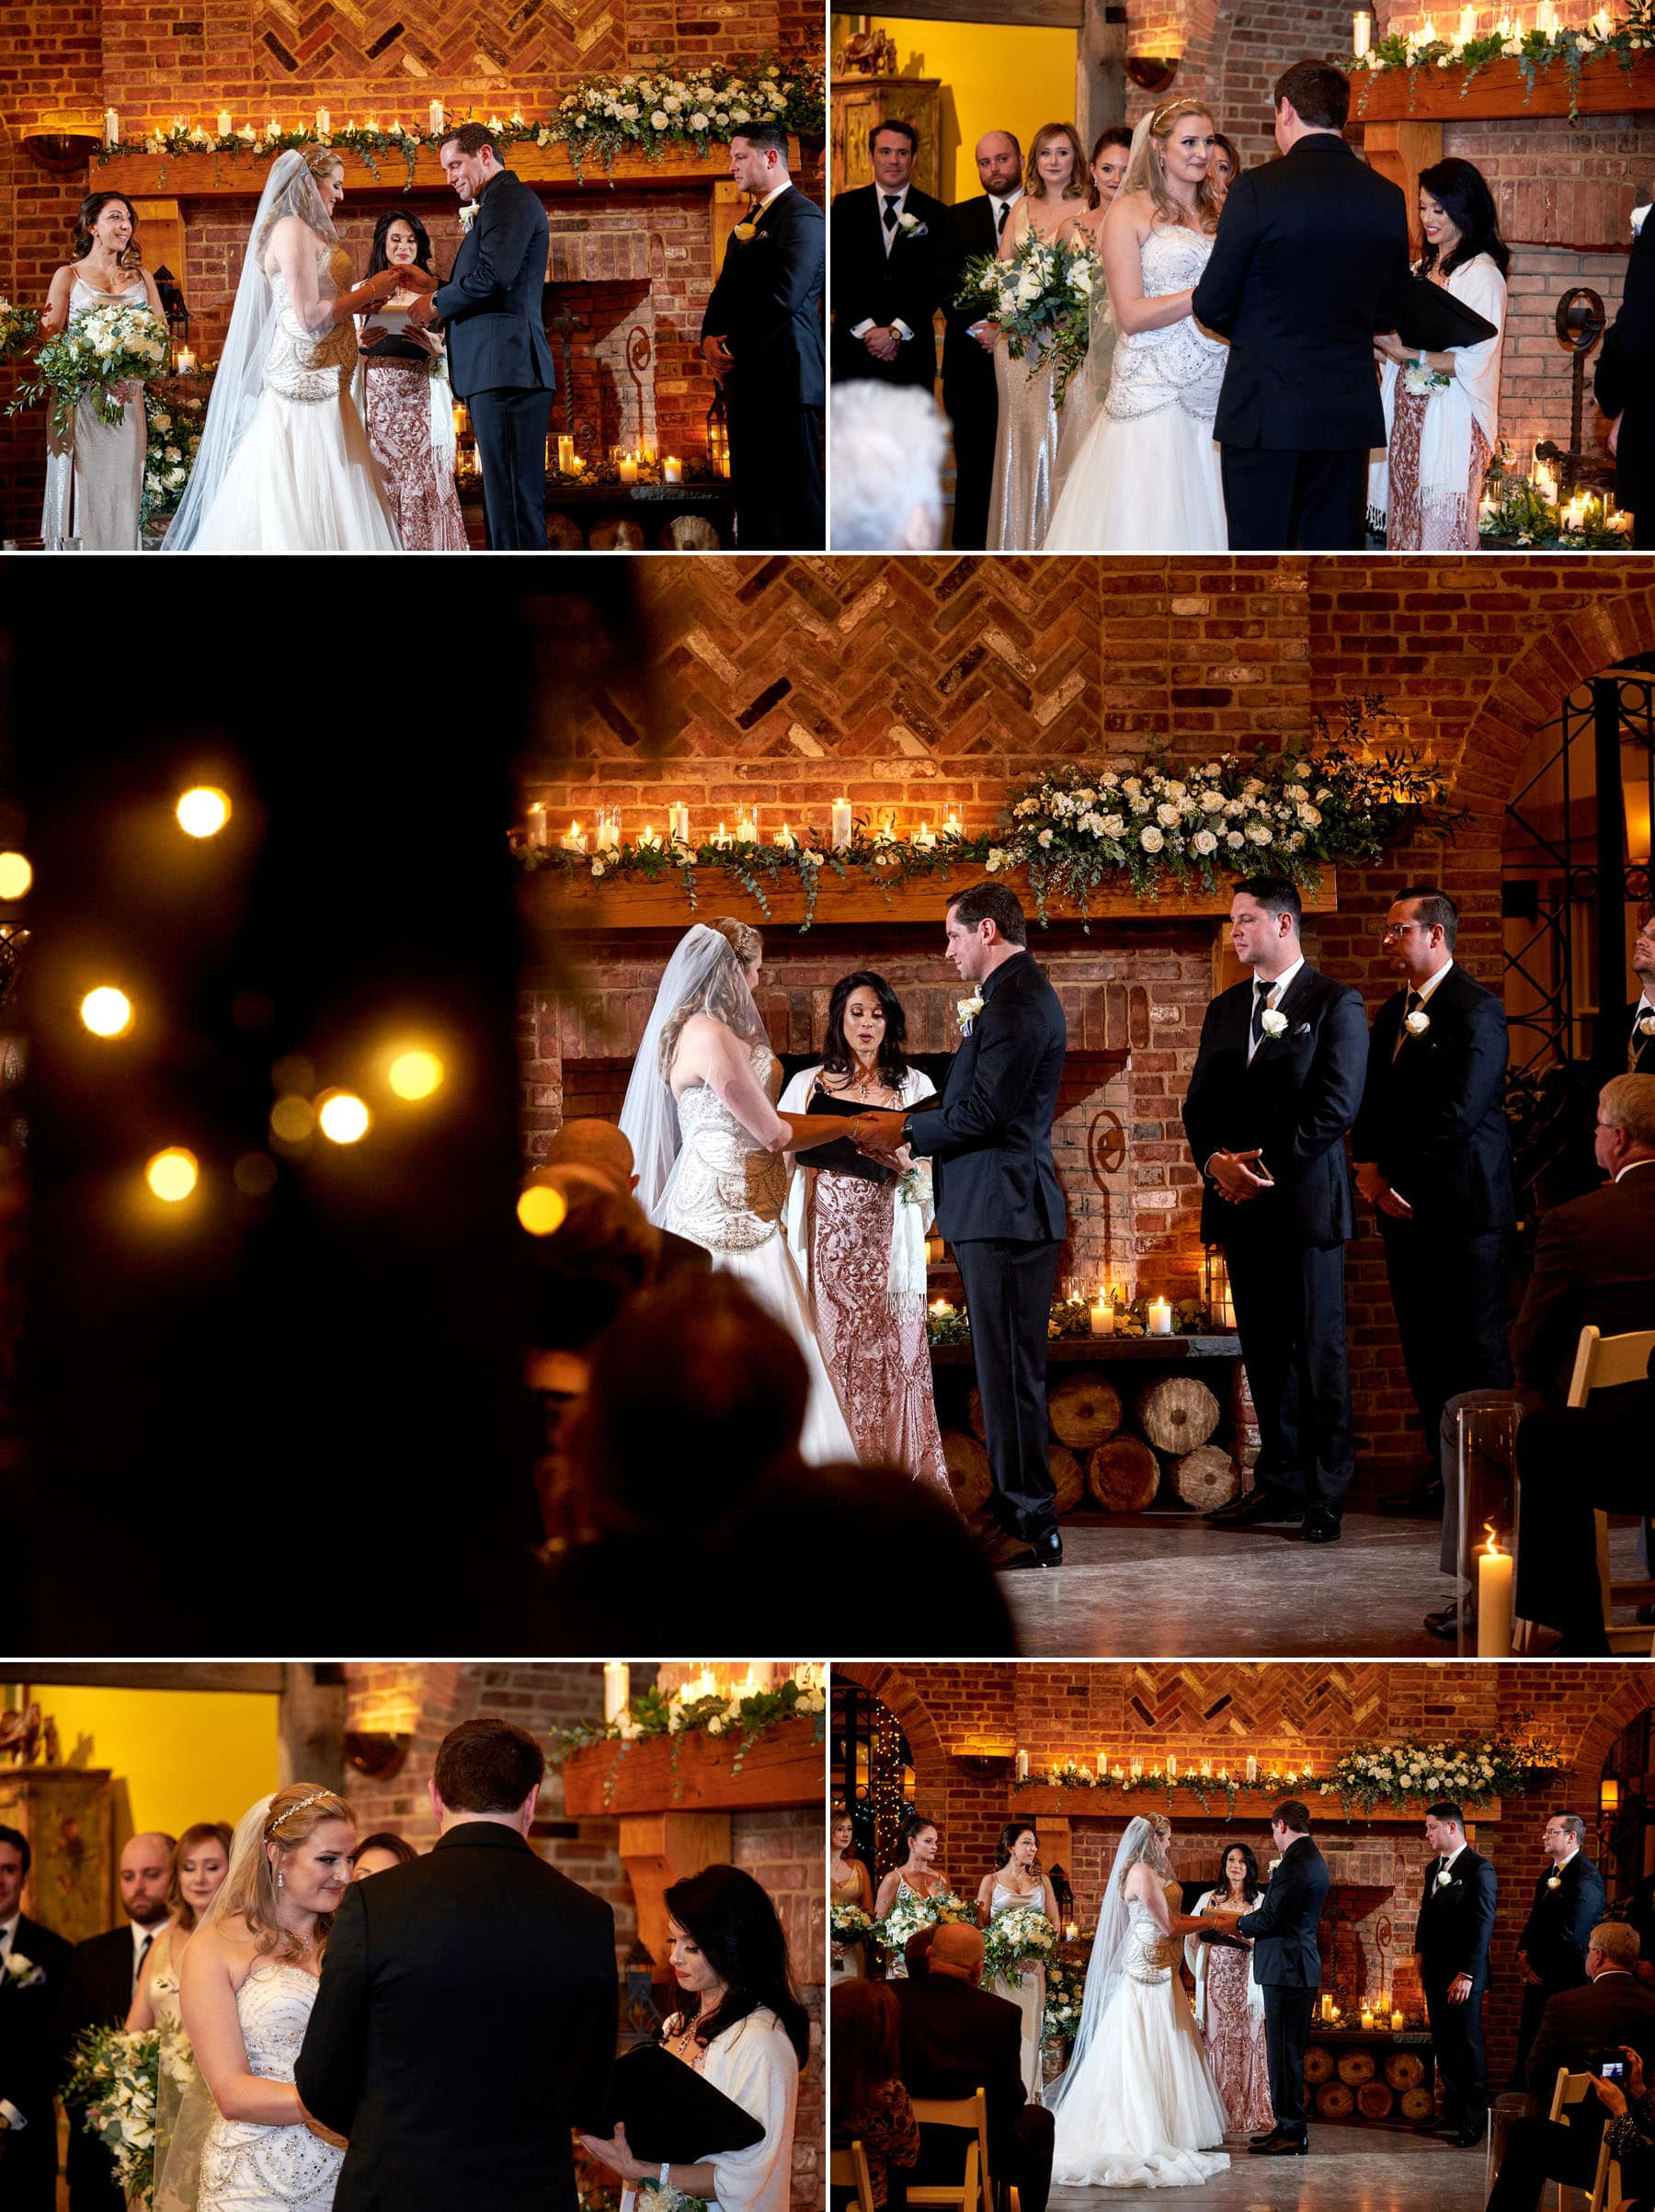 indoor wedding ceremony at laurita winery